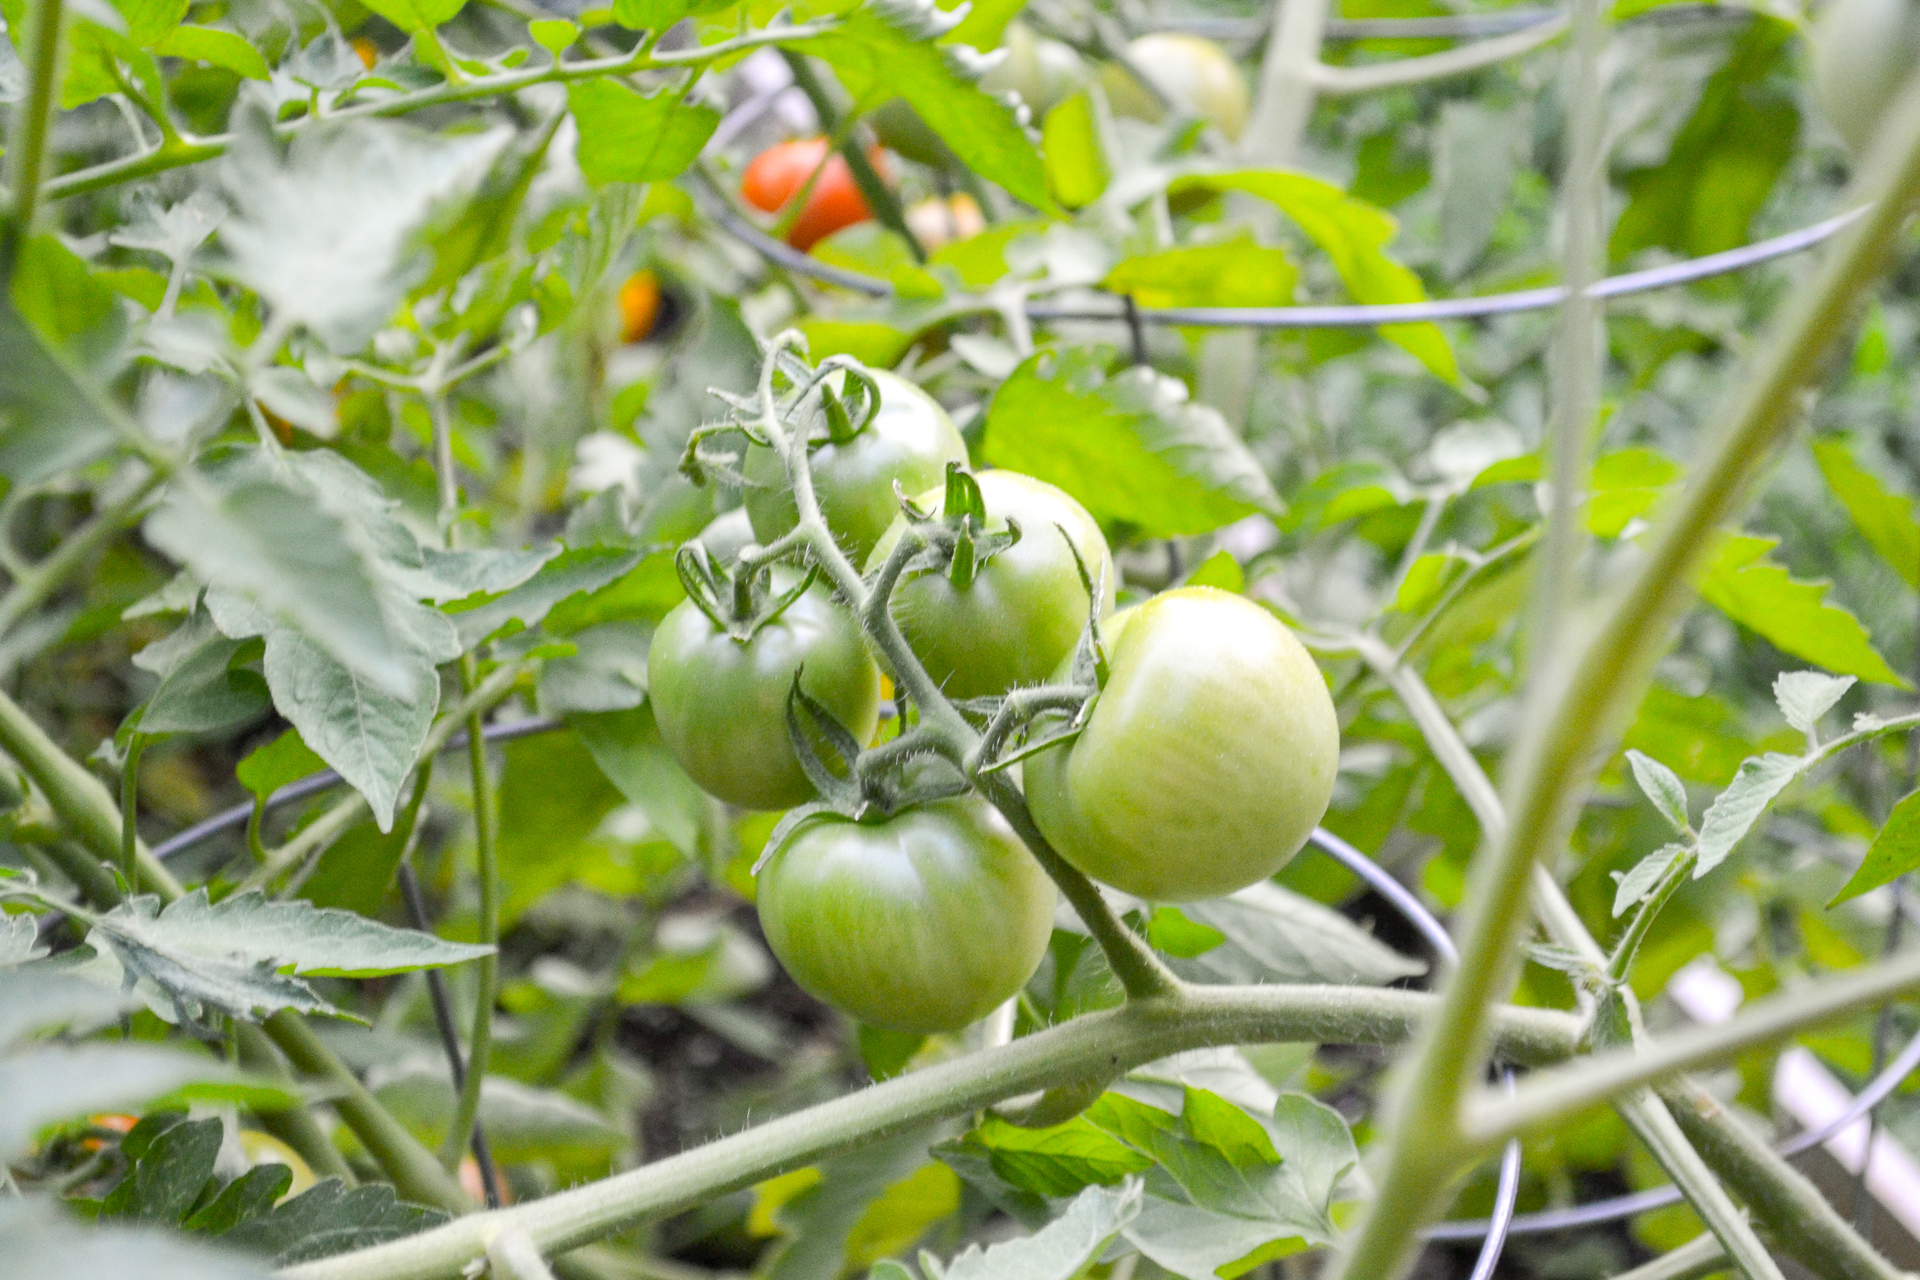 pretty green tomatoes in cluster